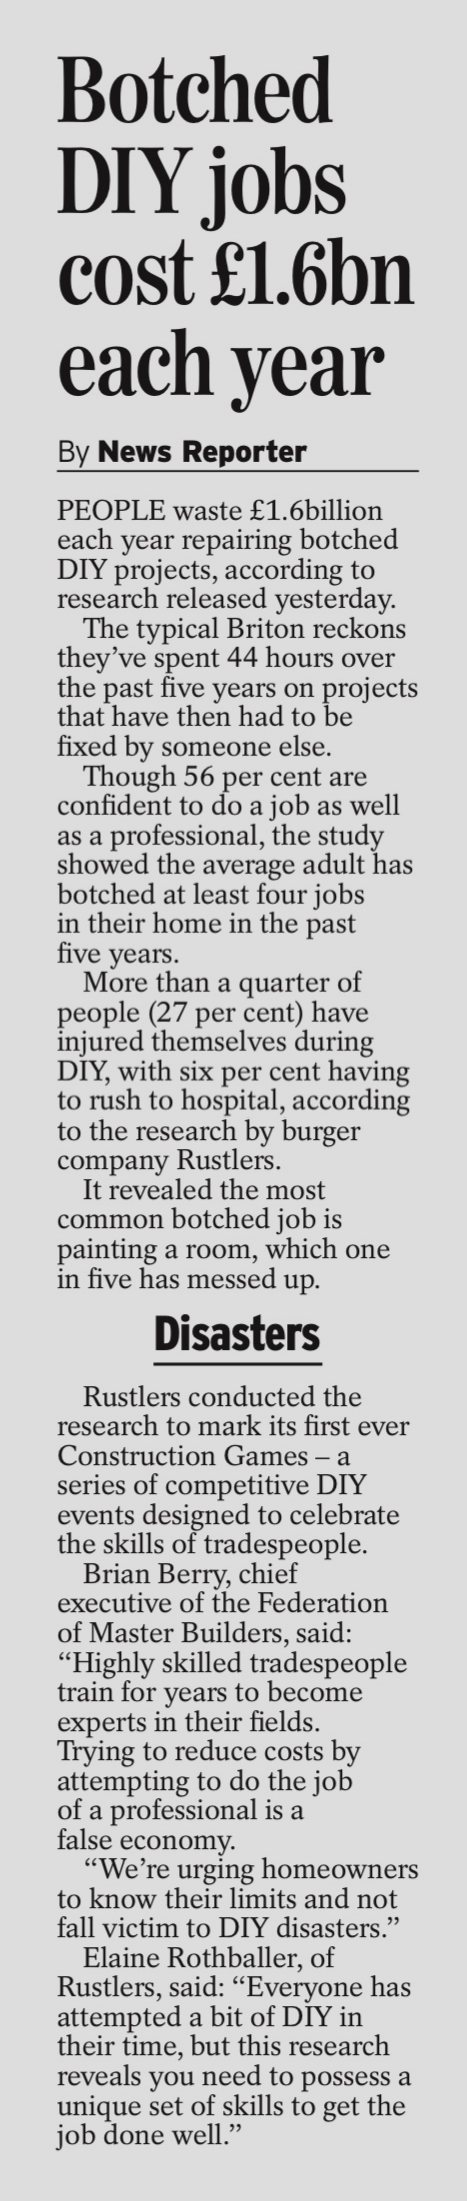 COVERAGE FOR RUSTLERS